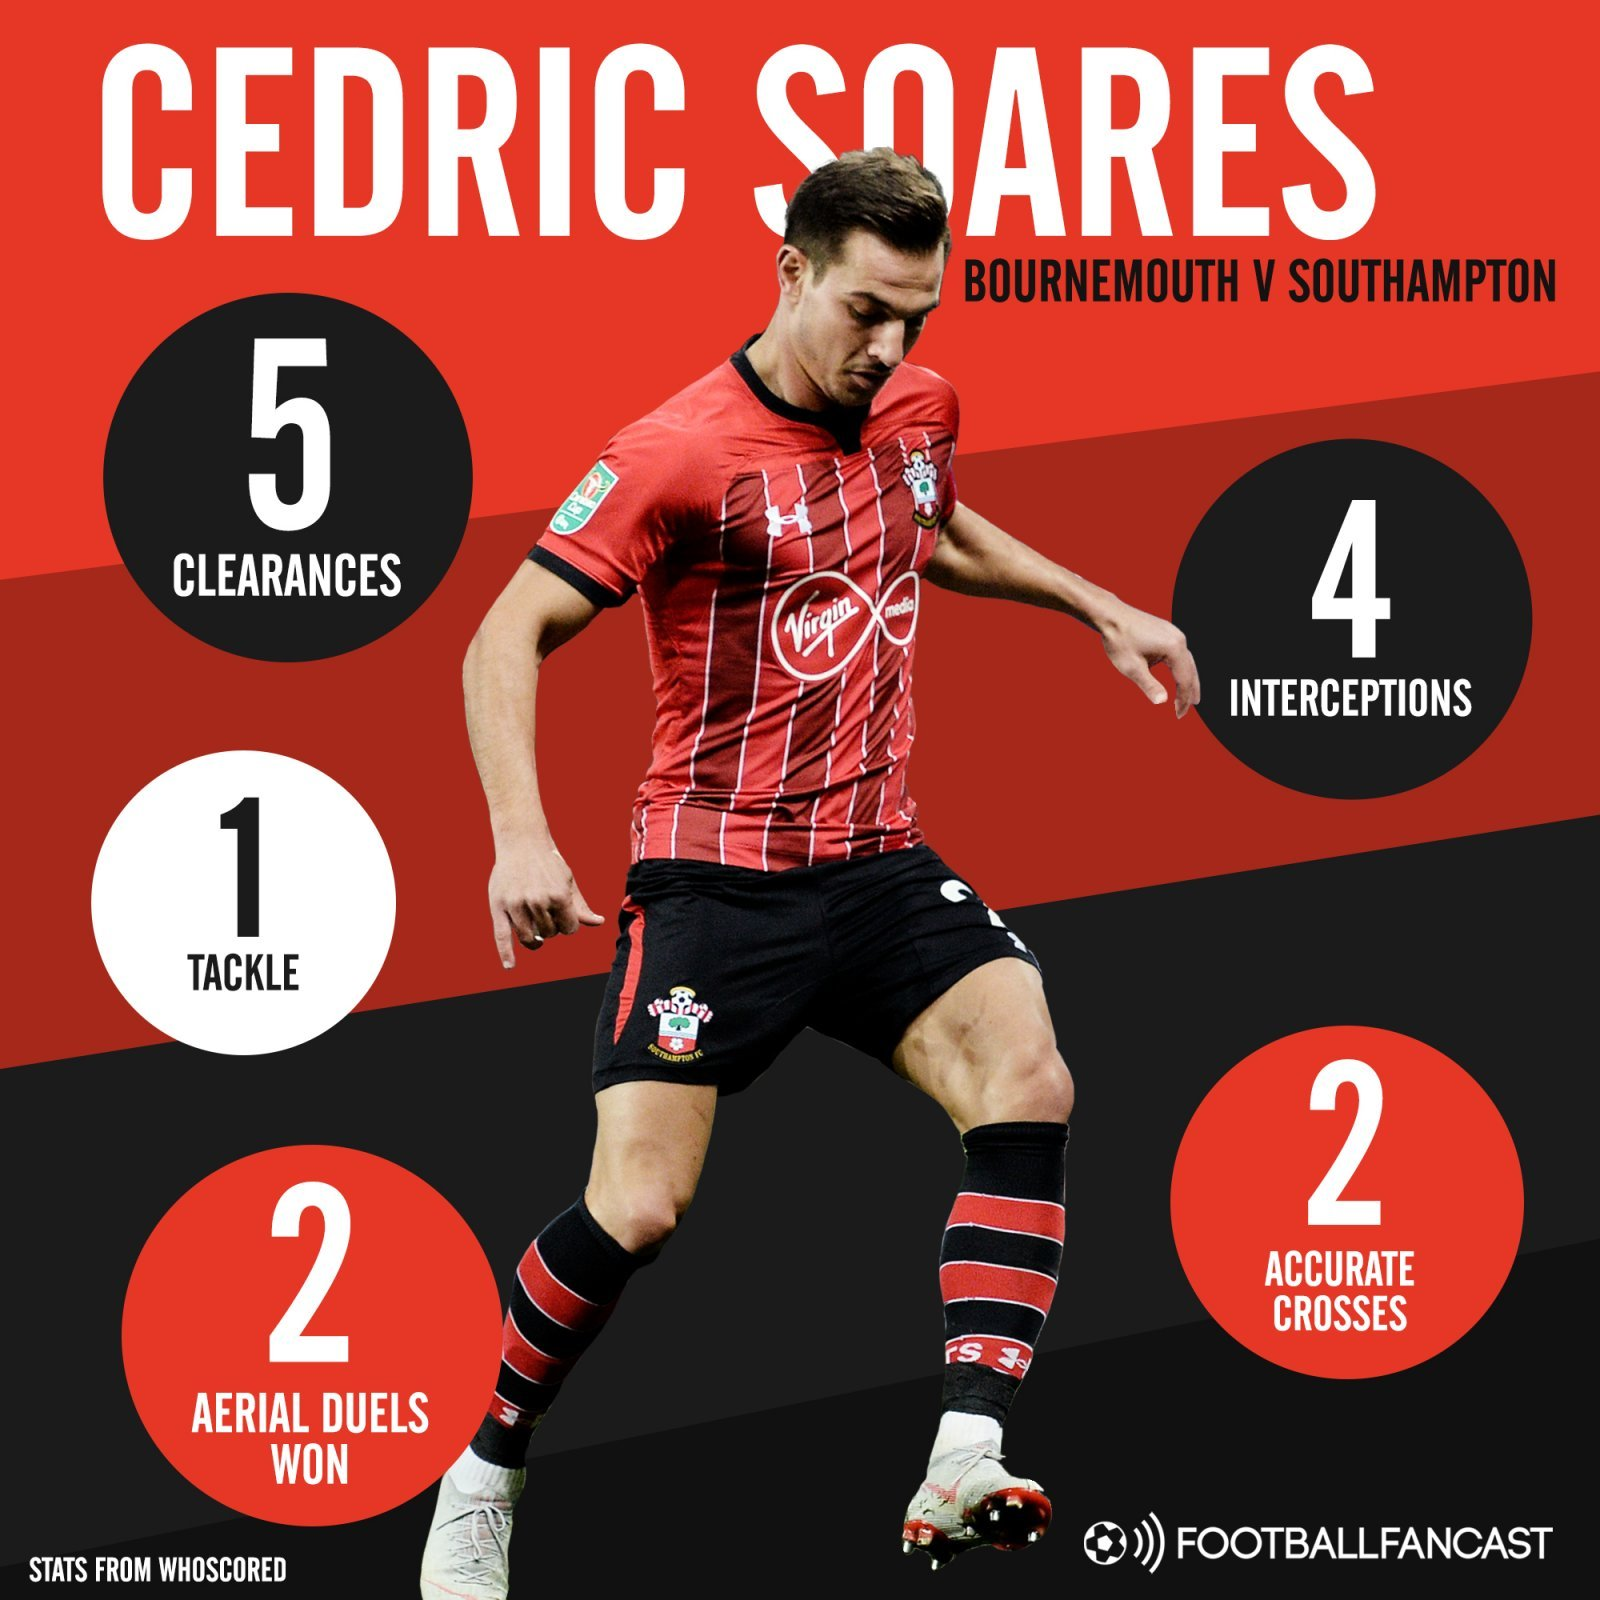 Southampton right-back Cedric Soares' stats in draw with Bournemouth